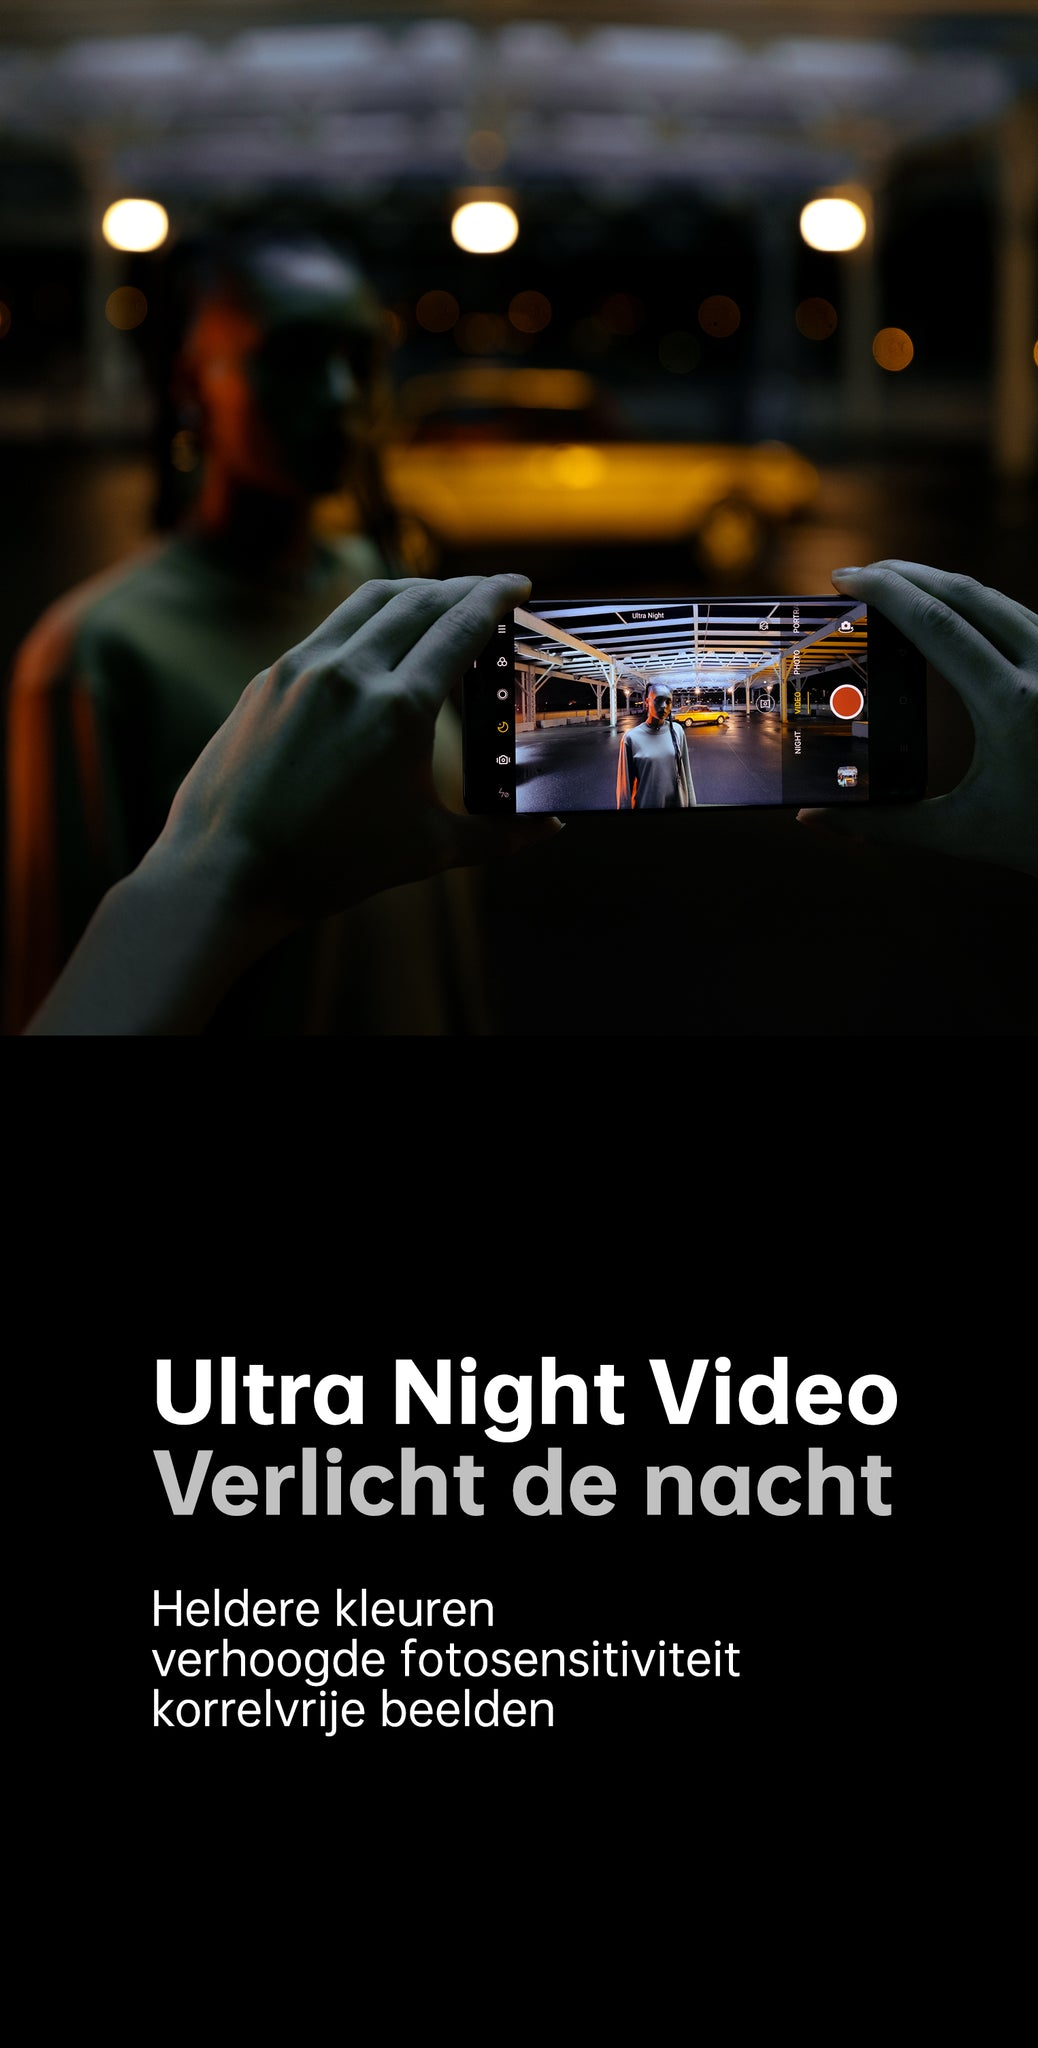 OPPO Reno4 - Ultra Night Video 3.0